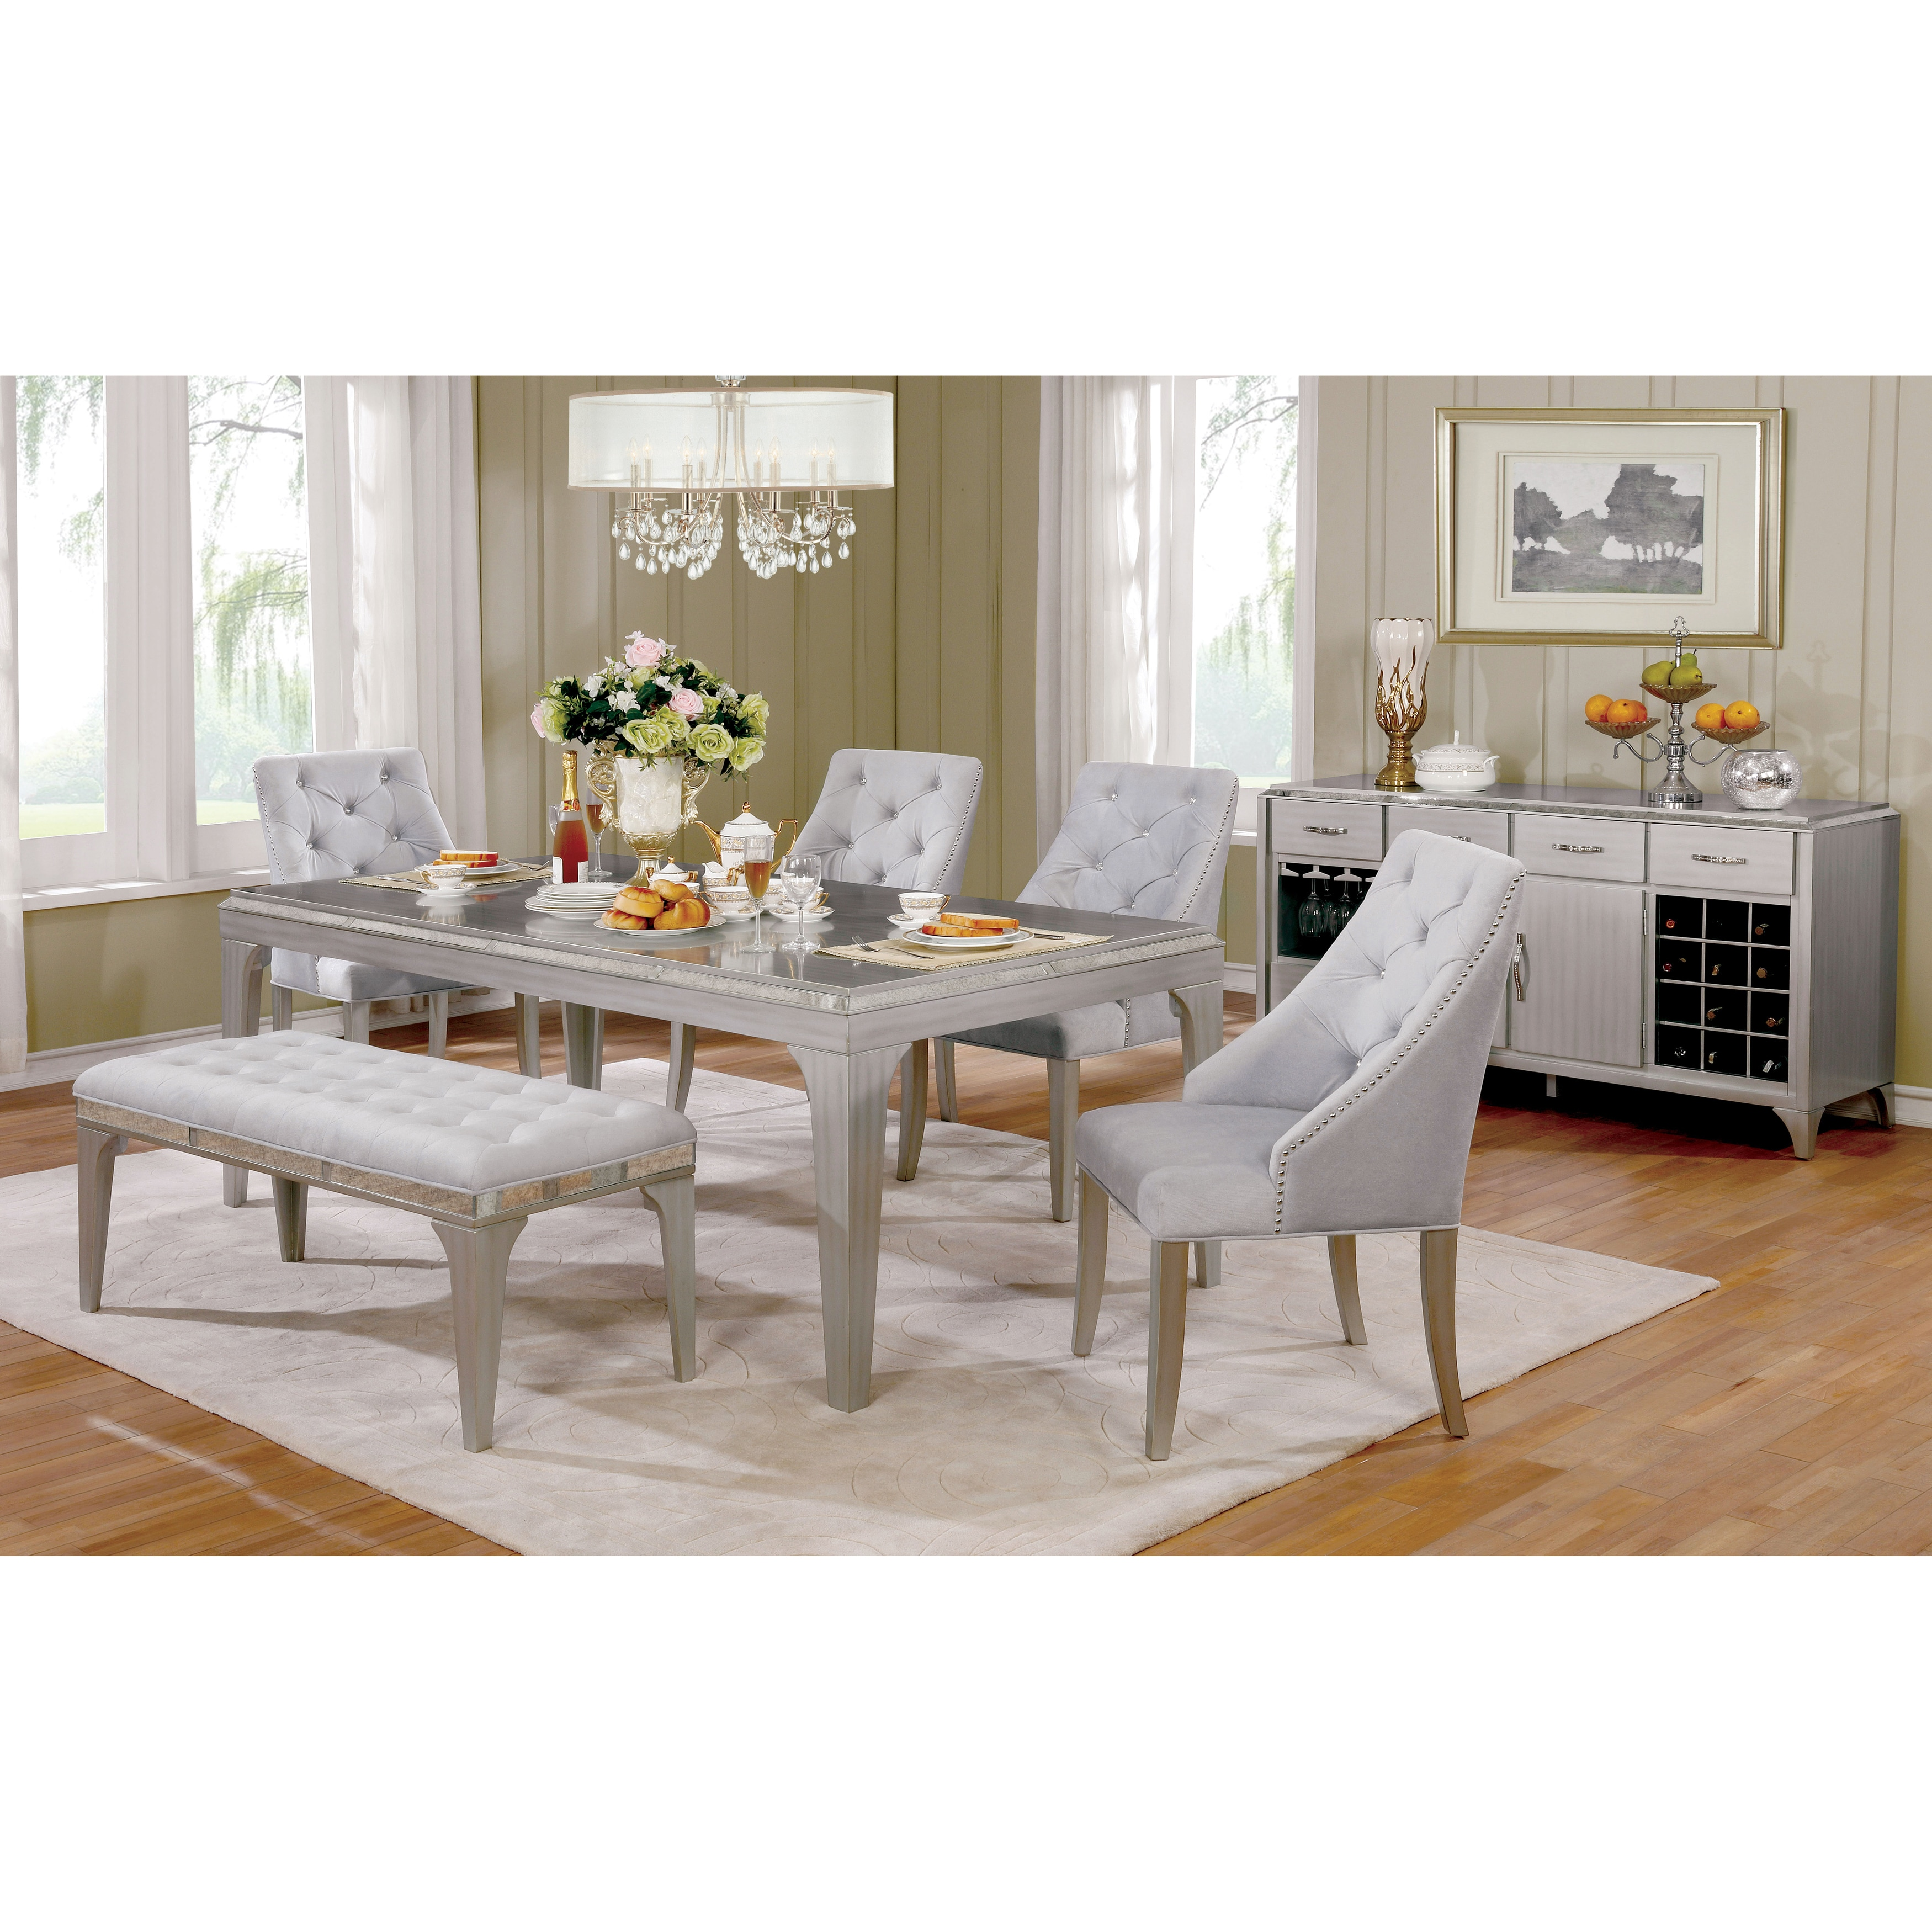 Shop Furniture Of America Selano Contemporary Mirrored Silver - 84 inch dining room table